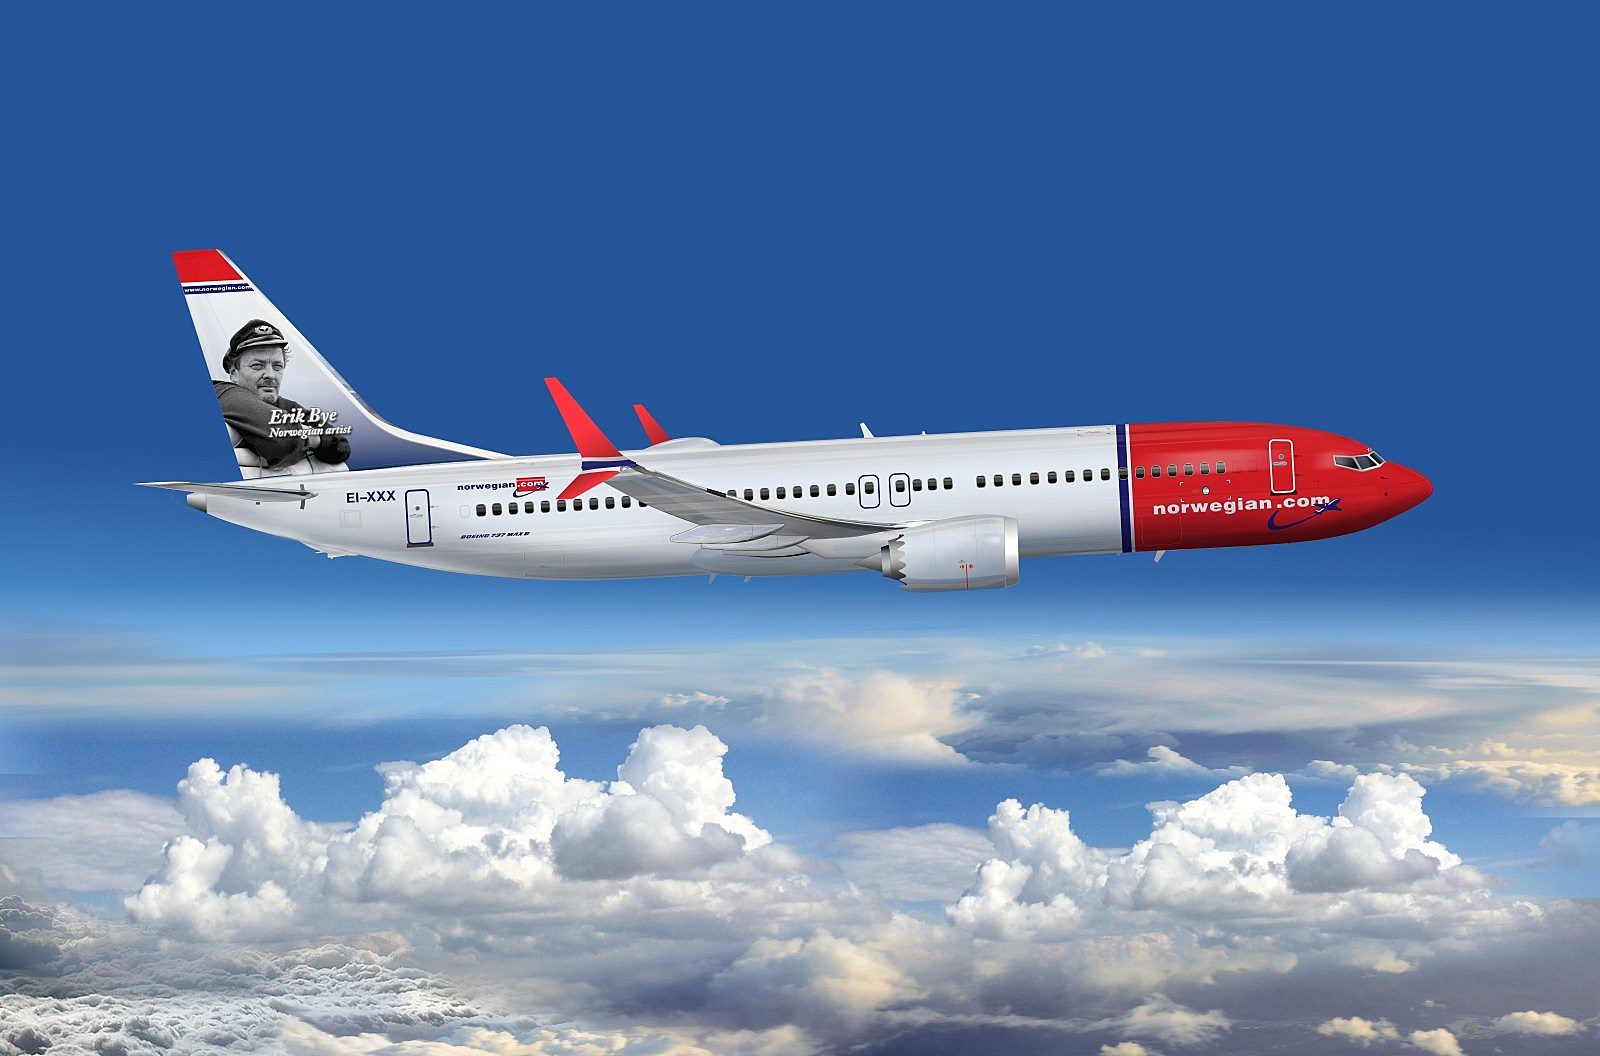 Norwegian air press release